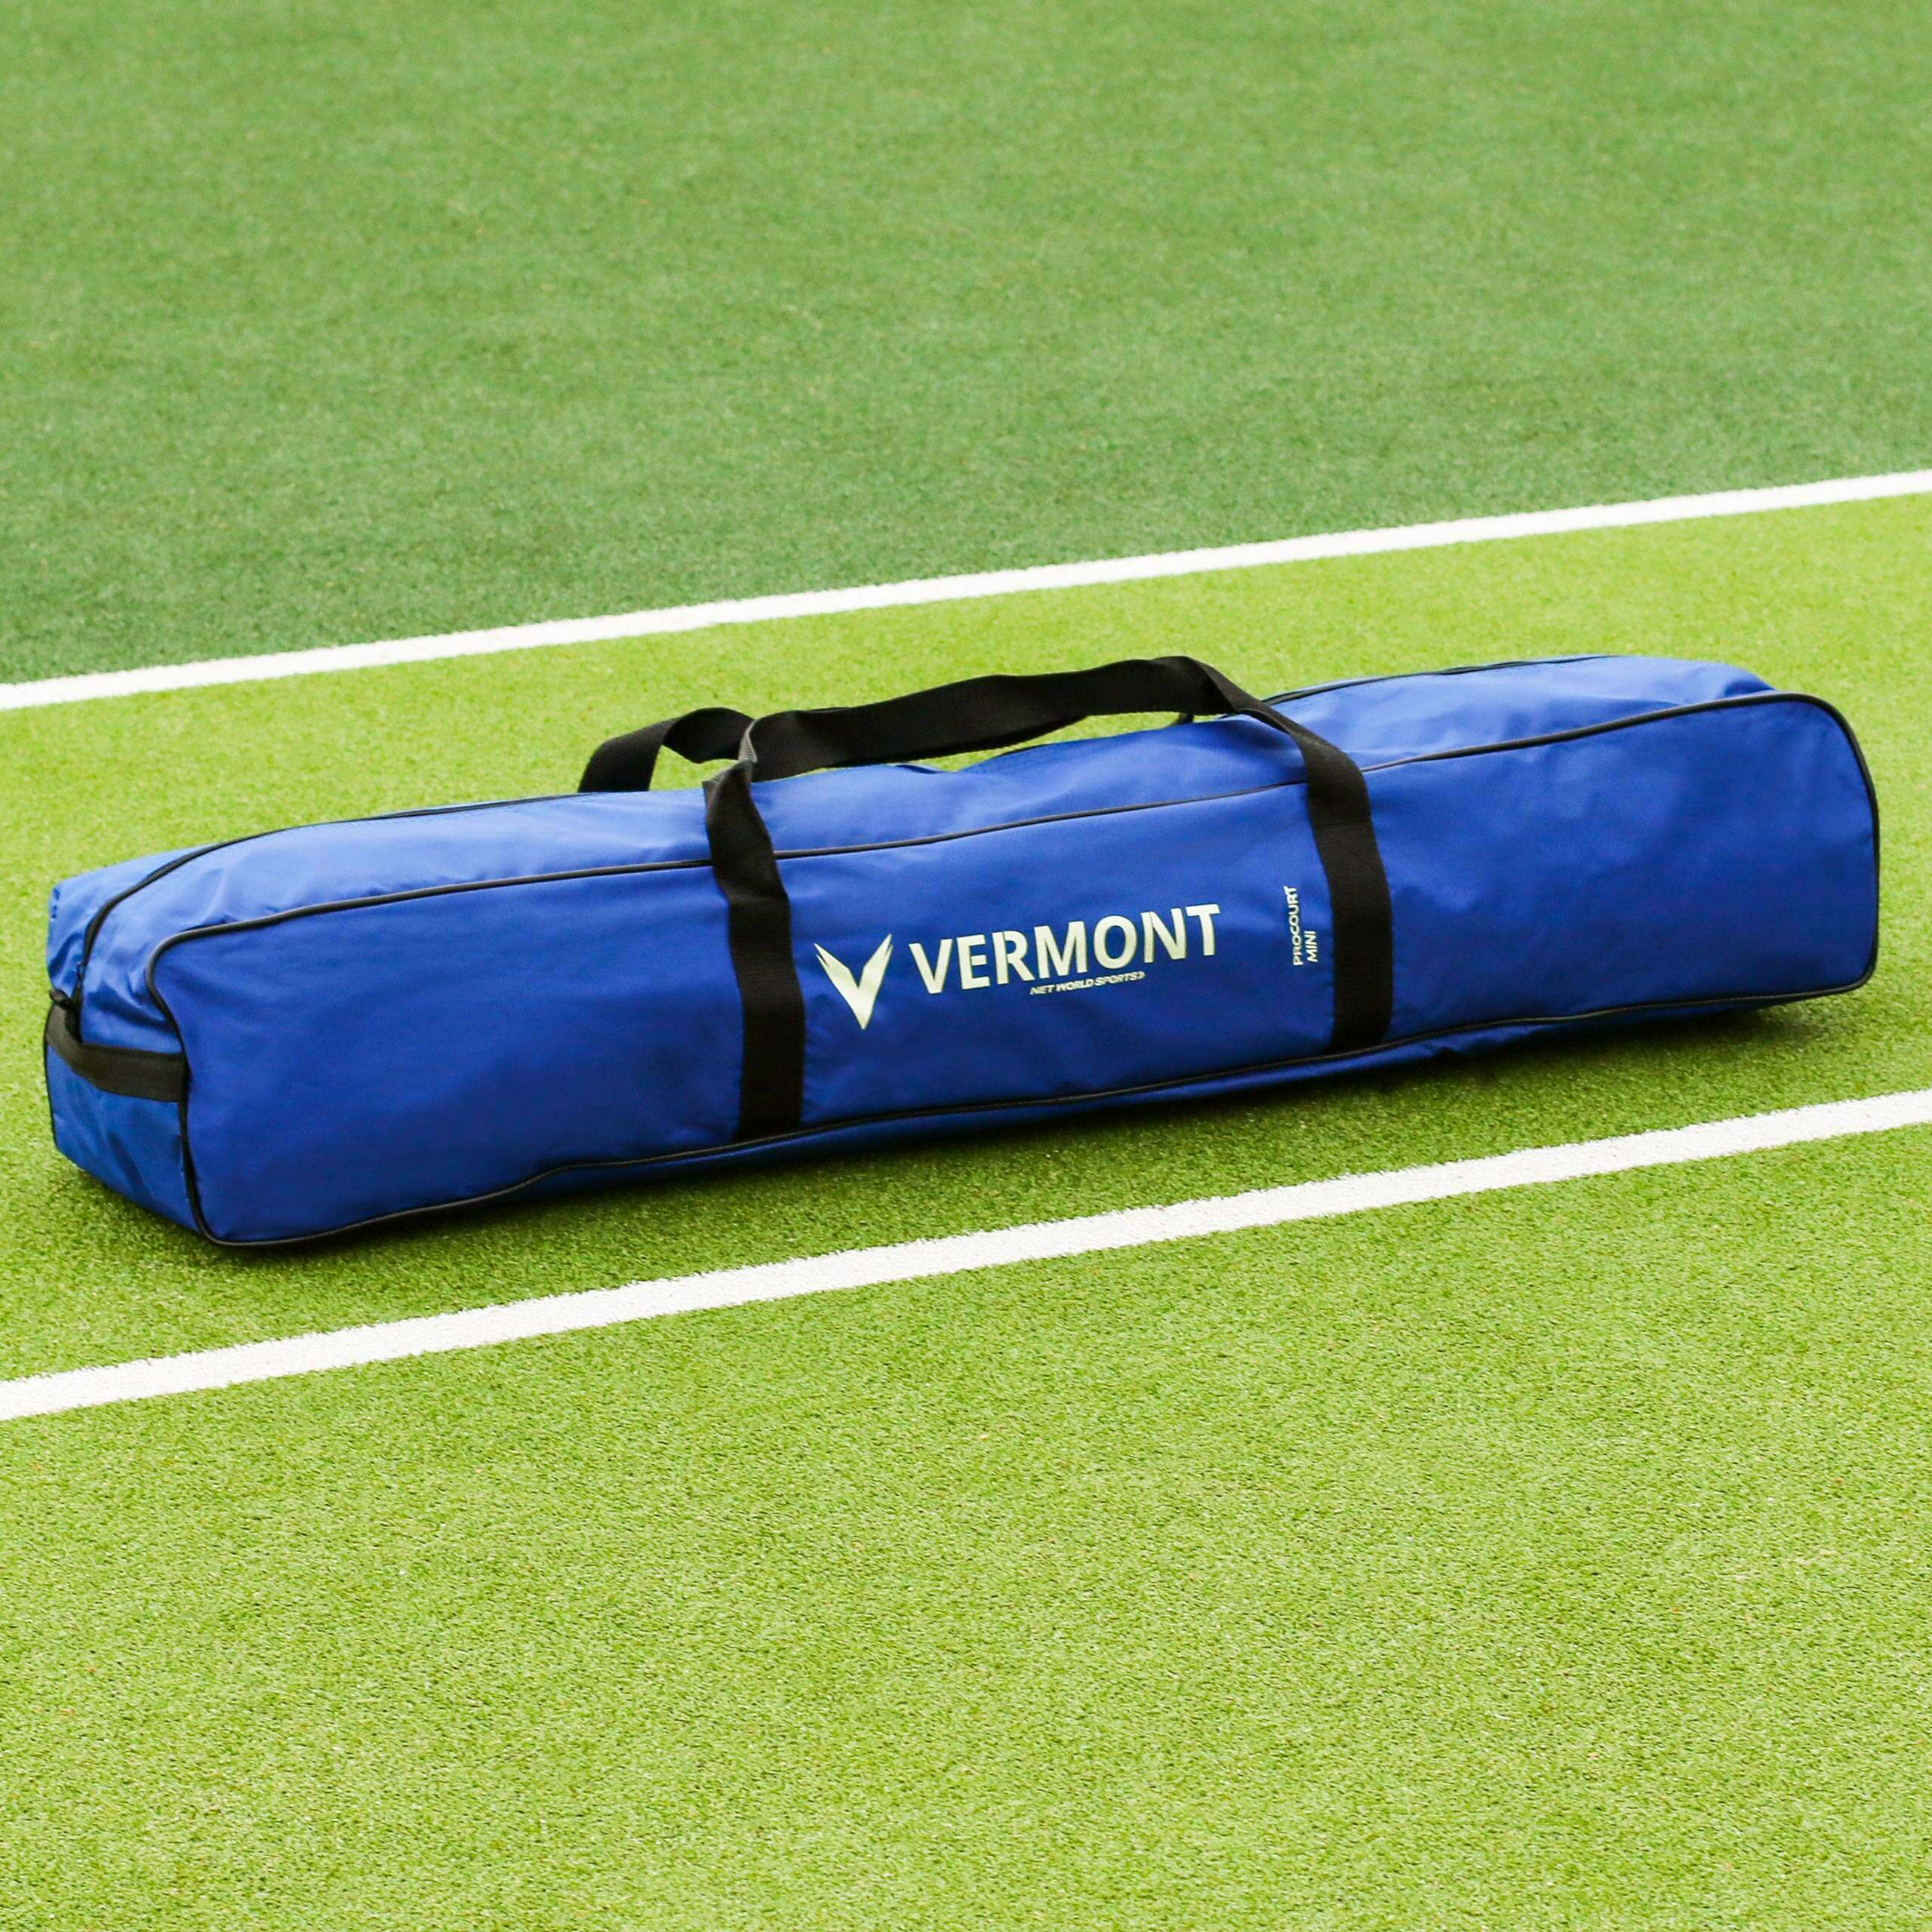 Portable Mini Tennis Nets | Mini Tennis Coaching Equipment